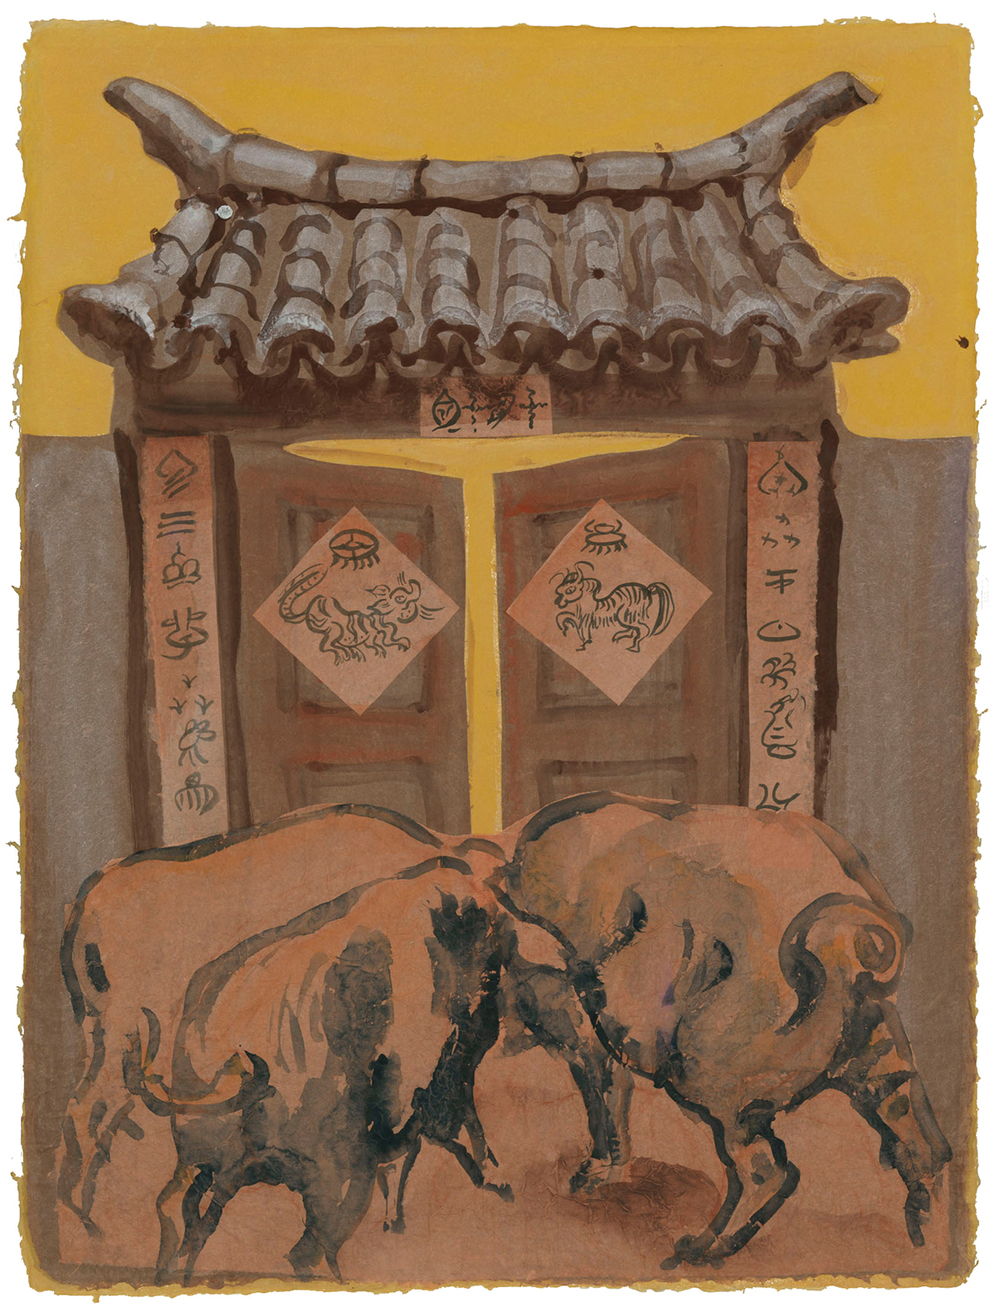 Pigs Going Through a Doorway, 2012